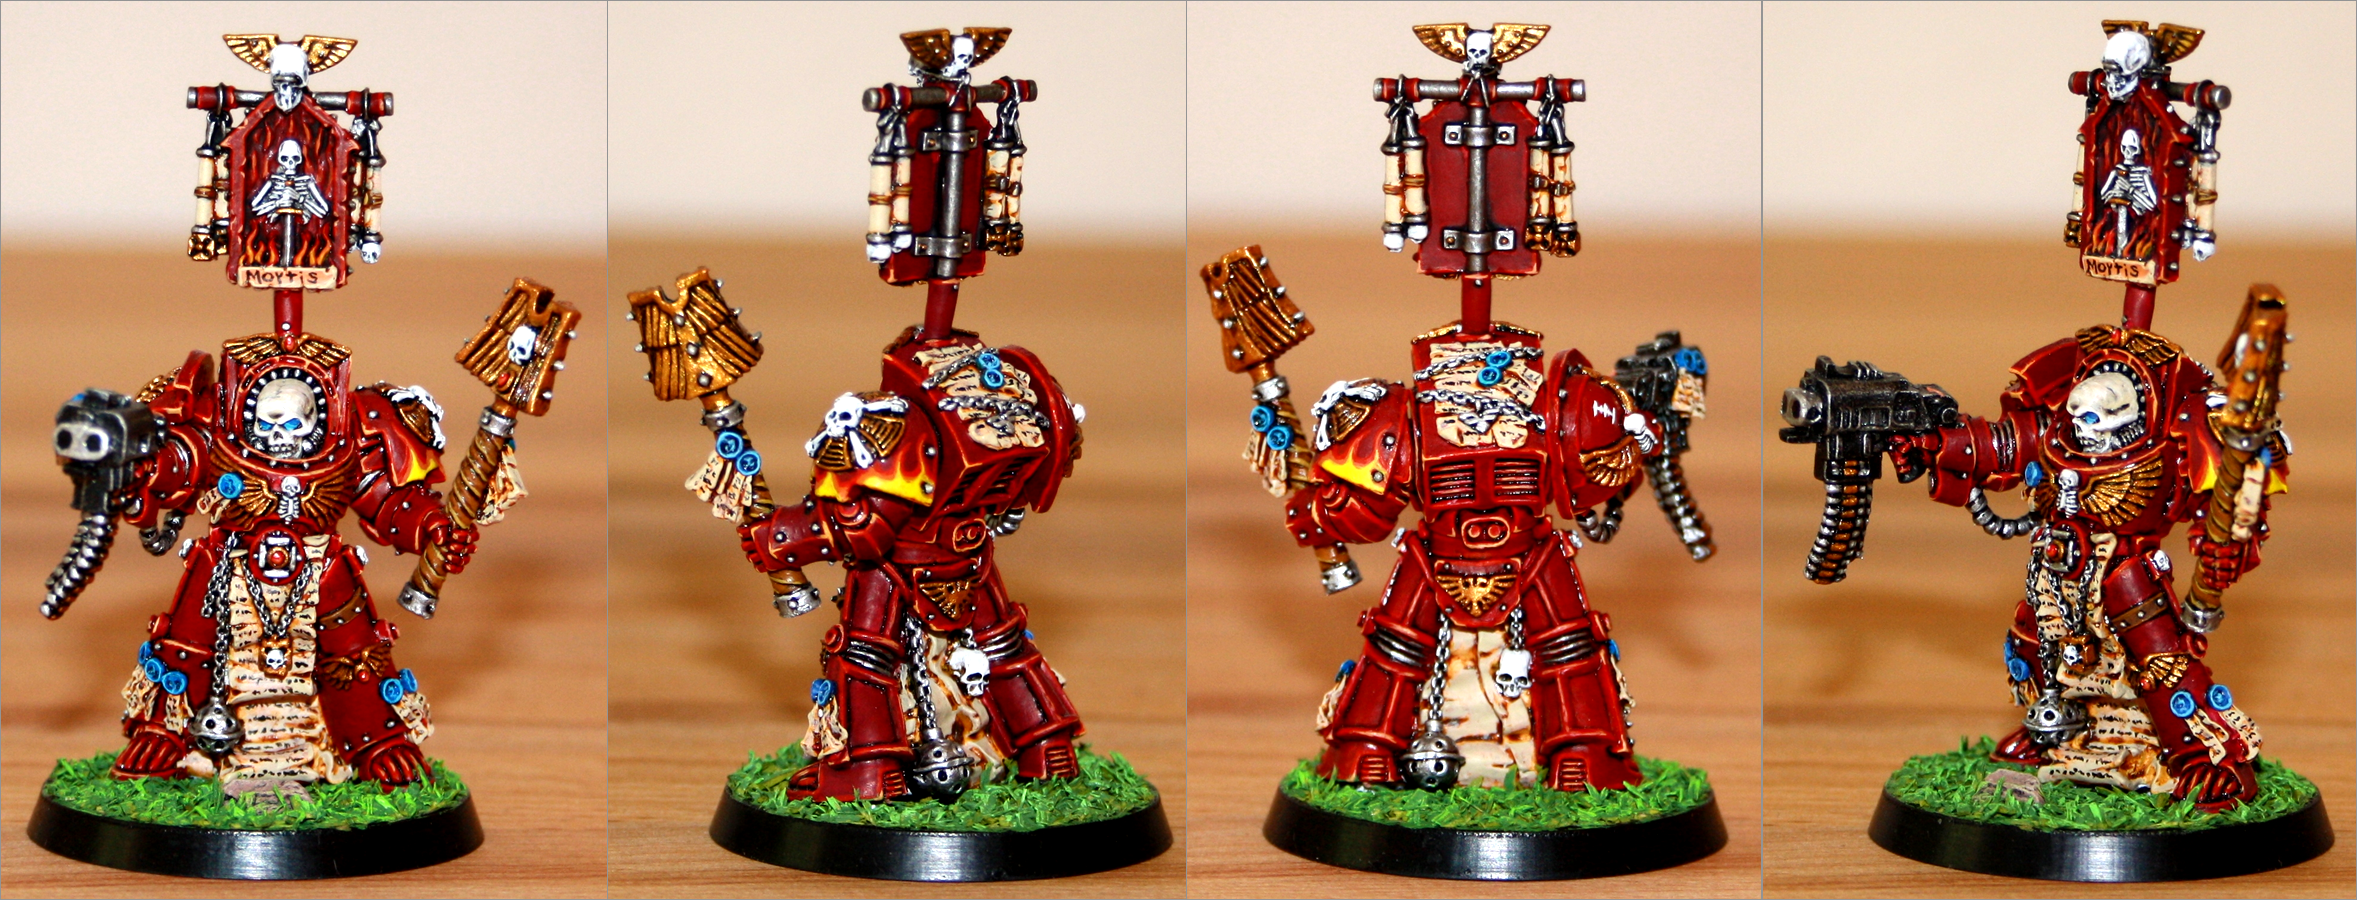 Chaplain, Inquisition, Red Hunters, Space Marines, Terminator Armor